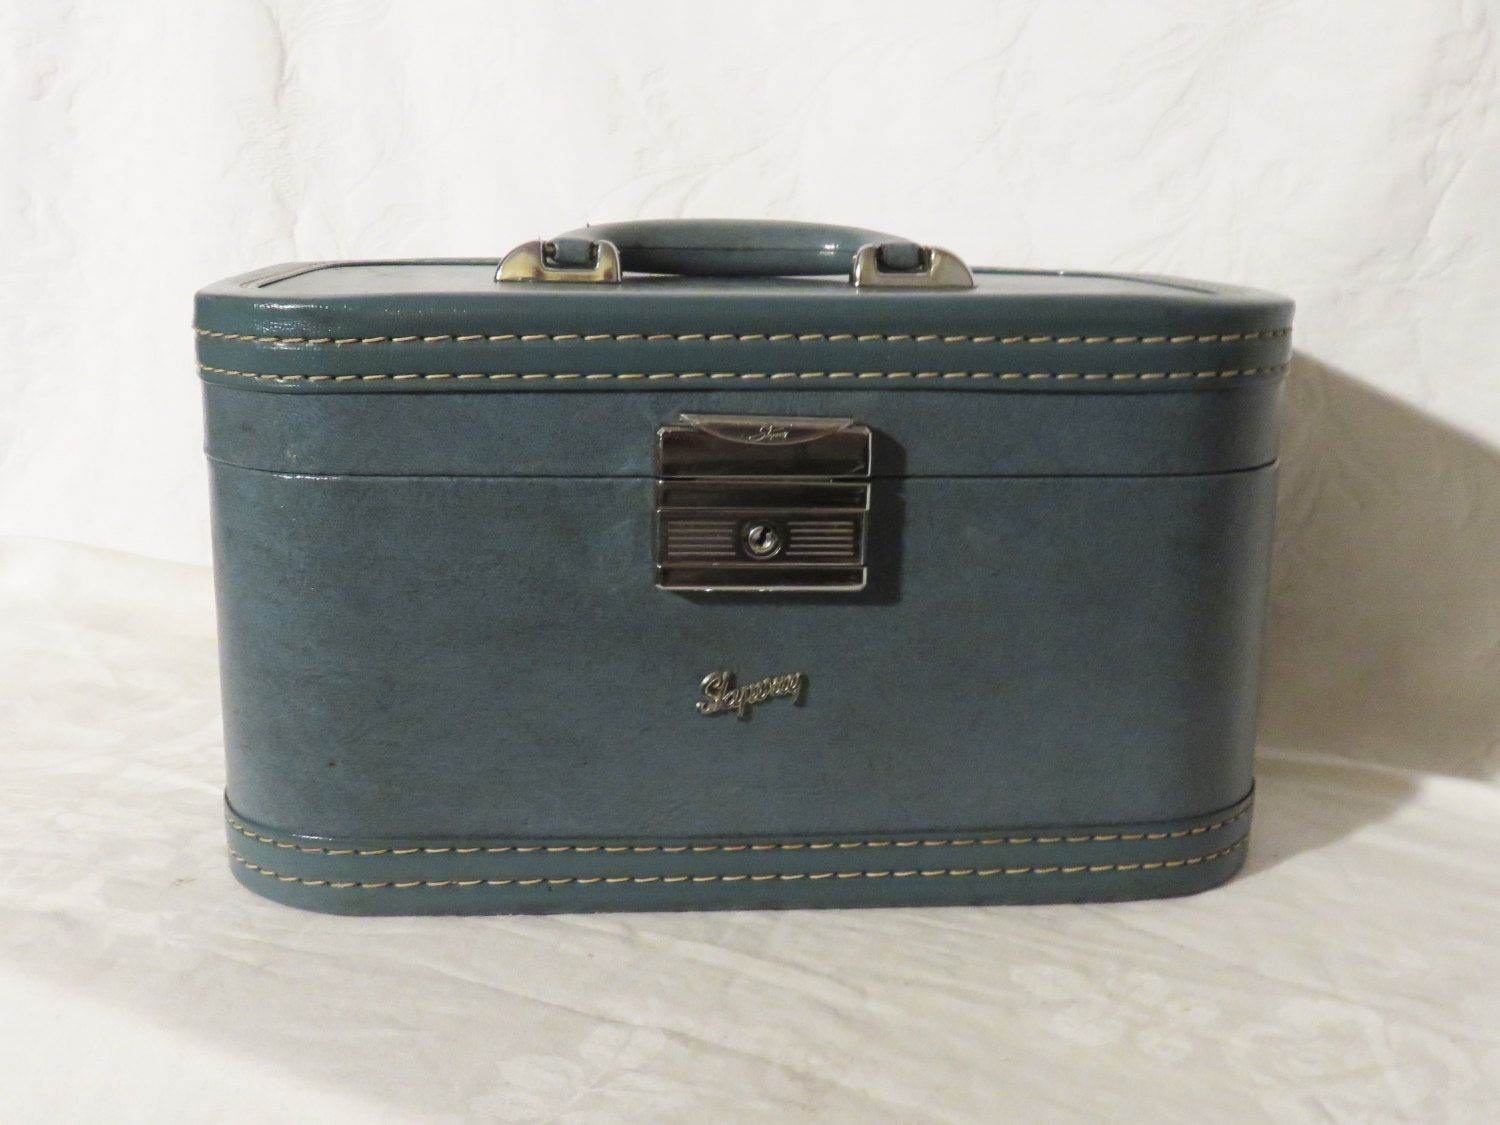 Skyway Train Case, Small Suitcase, 1950s Vintage Luggage, Hard ...